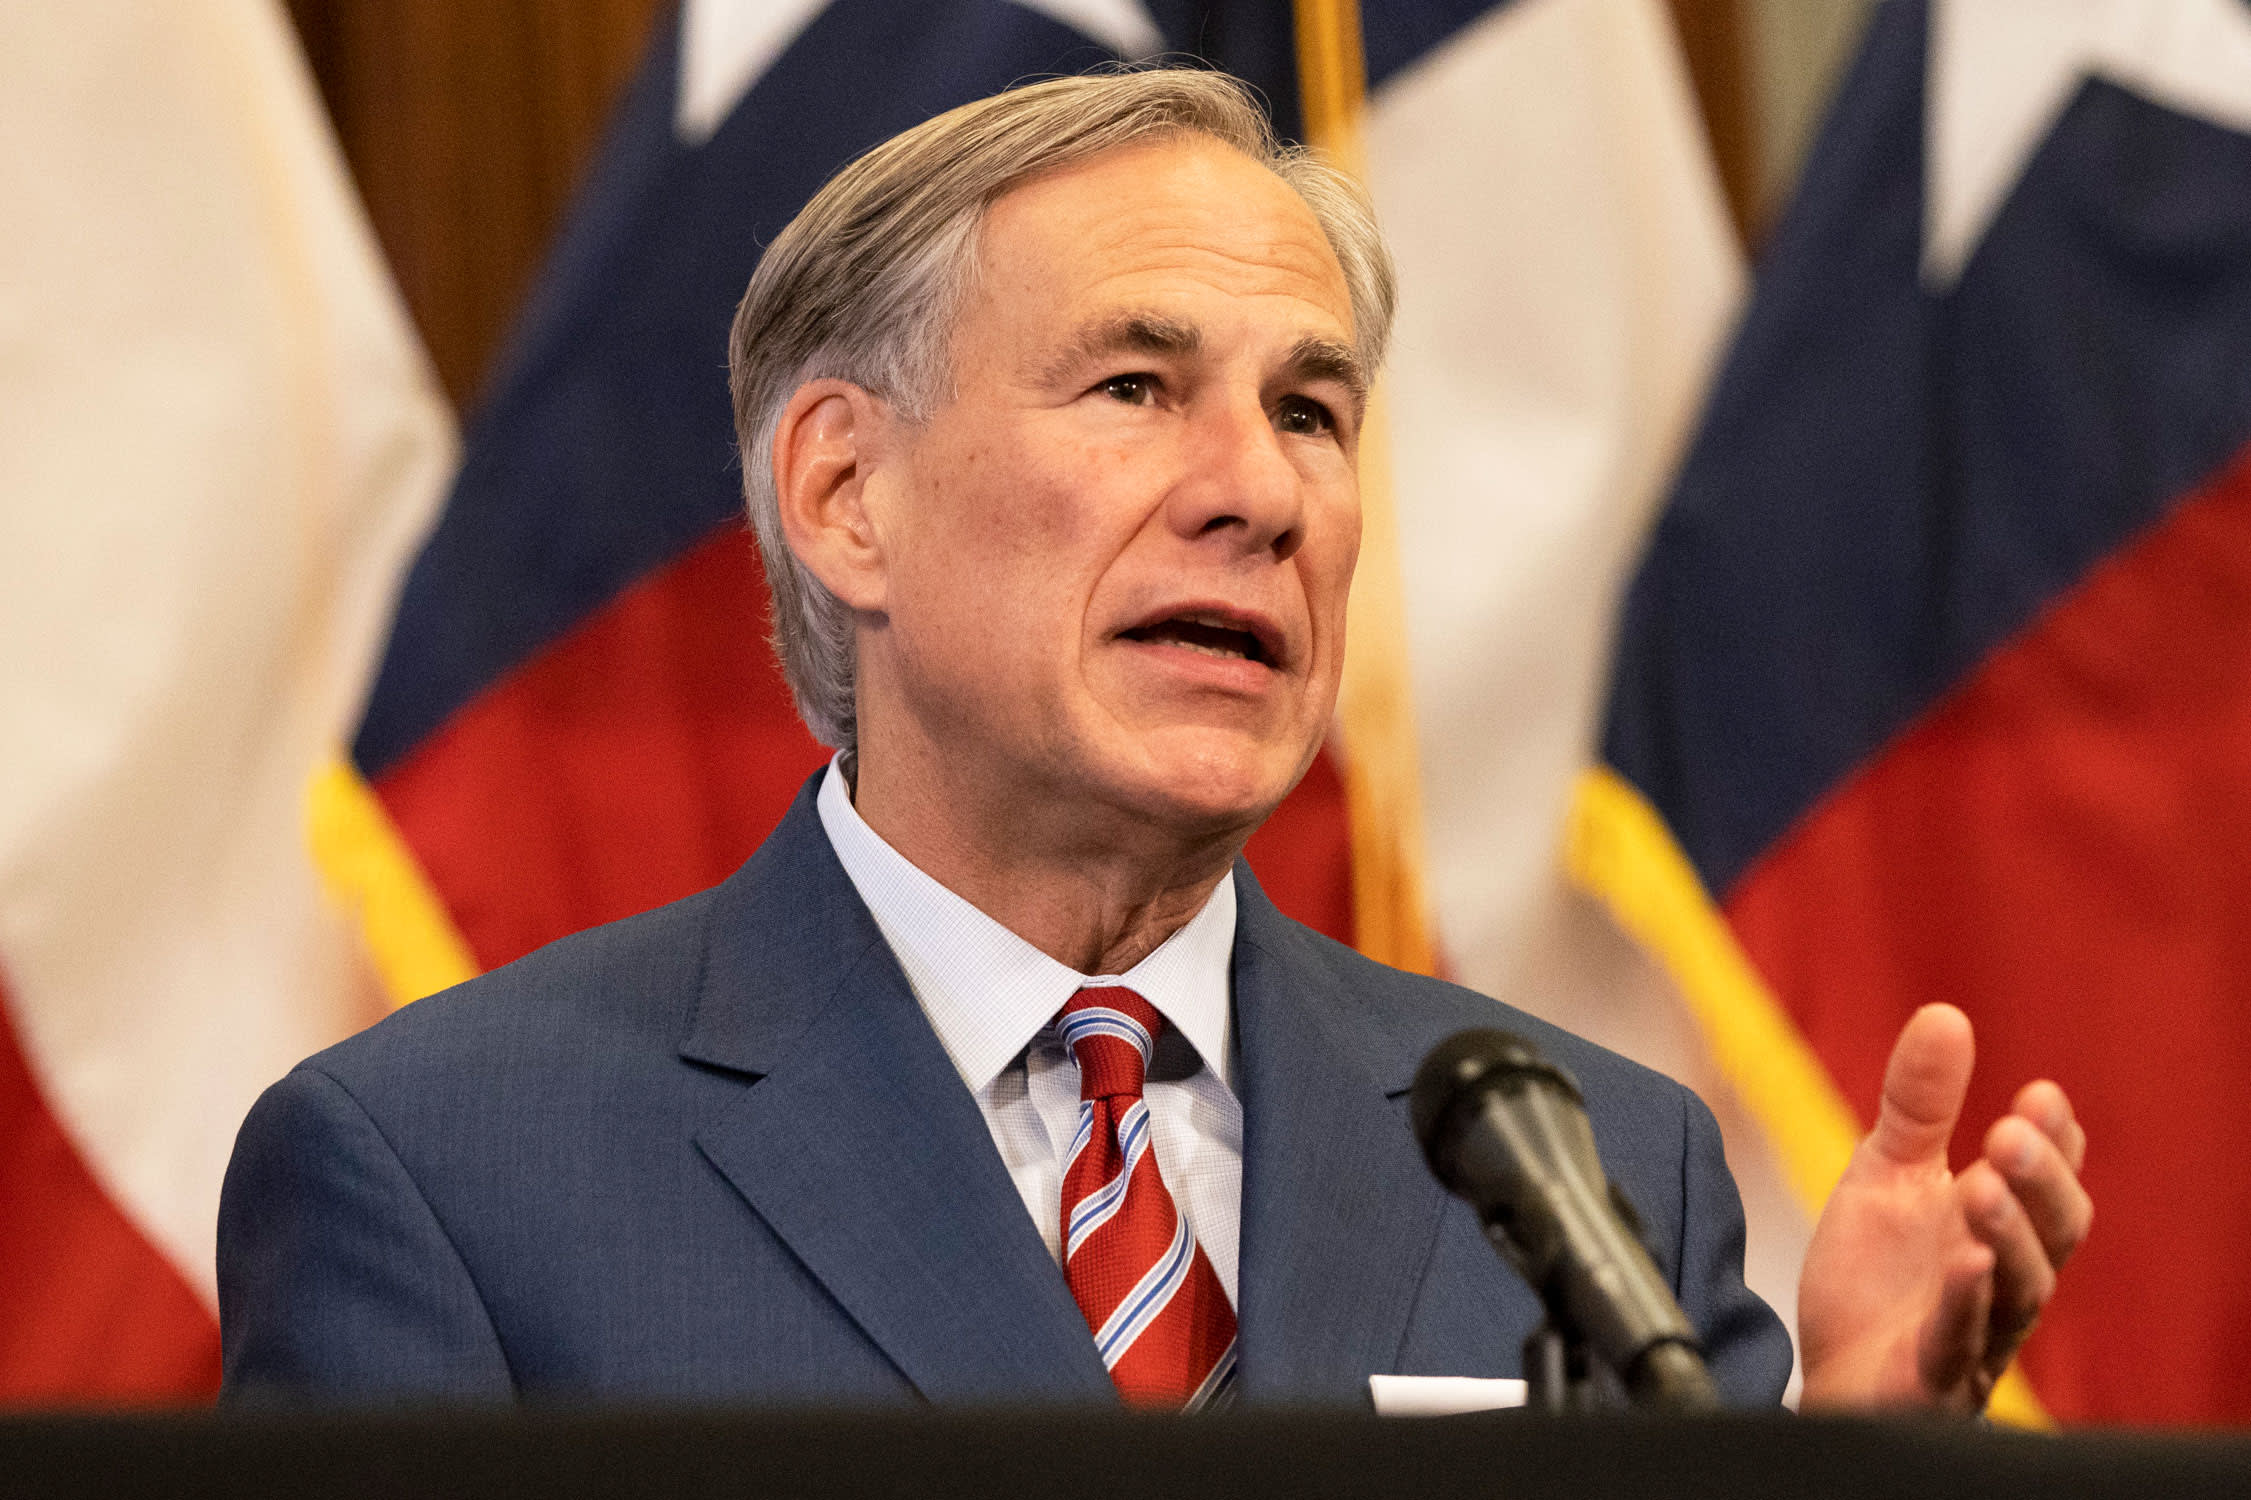 Texas pauses state's reopening plan as cases, hospitalizations rise